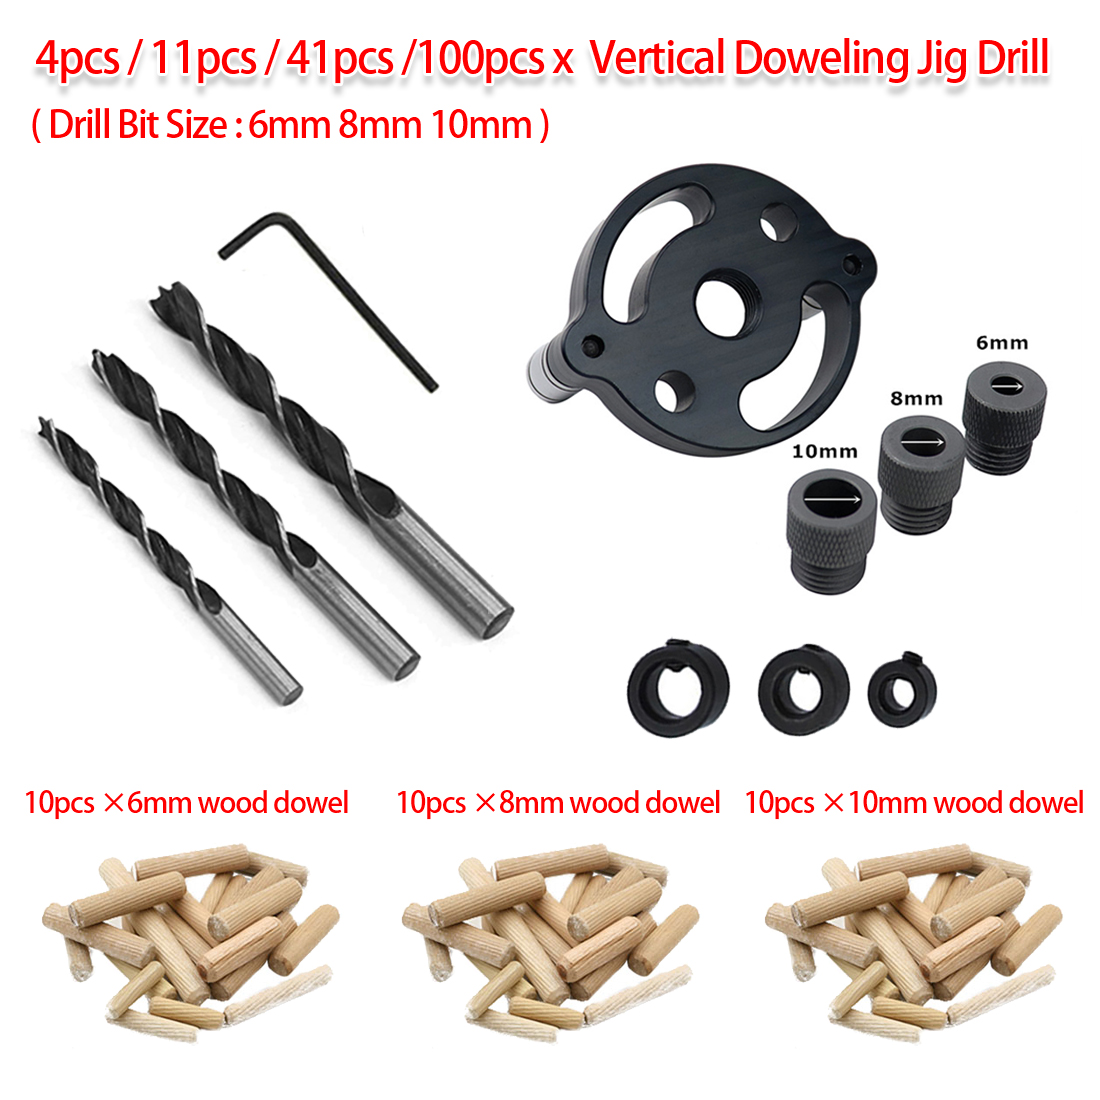 Woodworking Pocket Hole Jig 4pcs/11pcs/41pcs/100pcs 6mm 8mm 10mm Vertical Doweling Jig Drill Guide For Locator Hole Puncher